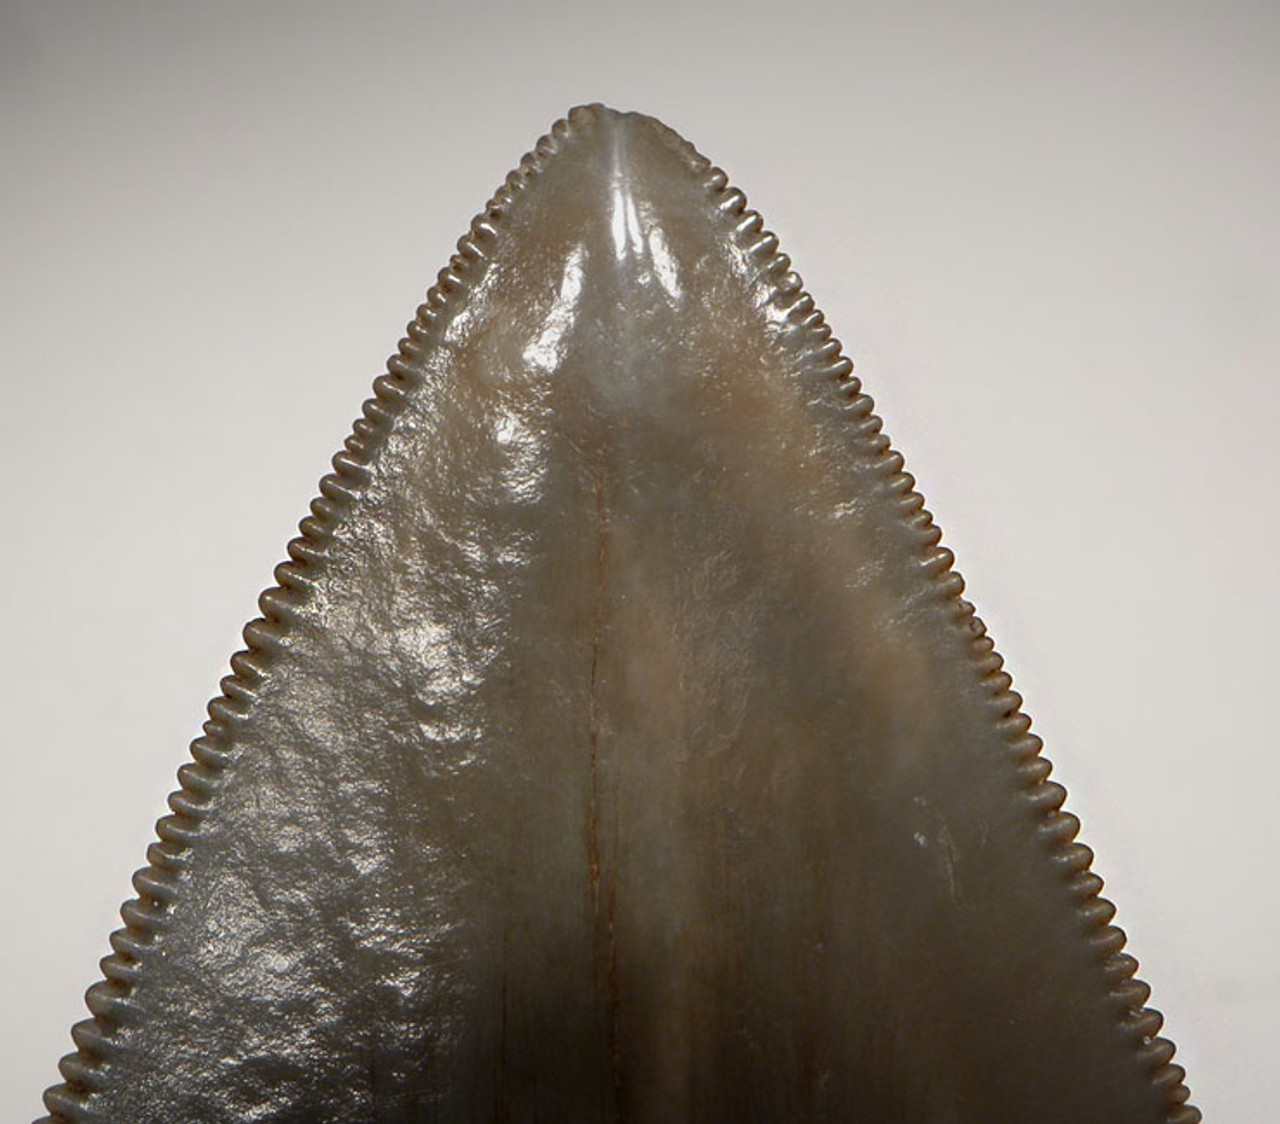 SH6-343 - FINEST GRADE 3.6 INCH SPOTTED BLUE-GRAY MEGALODON SHARK TOOTH